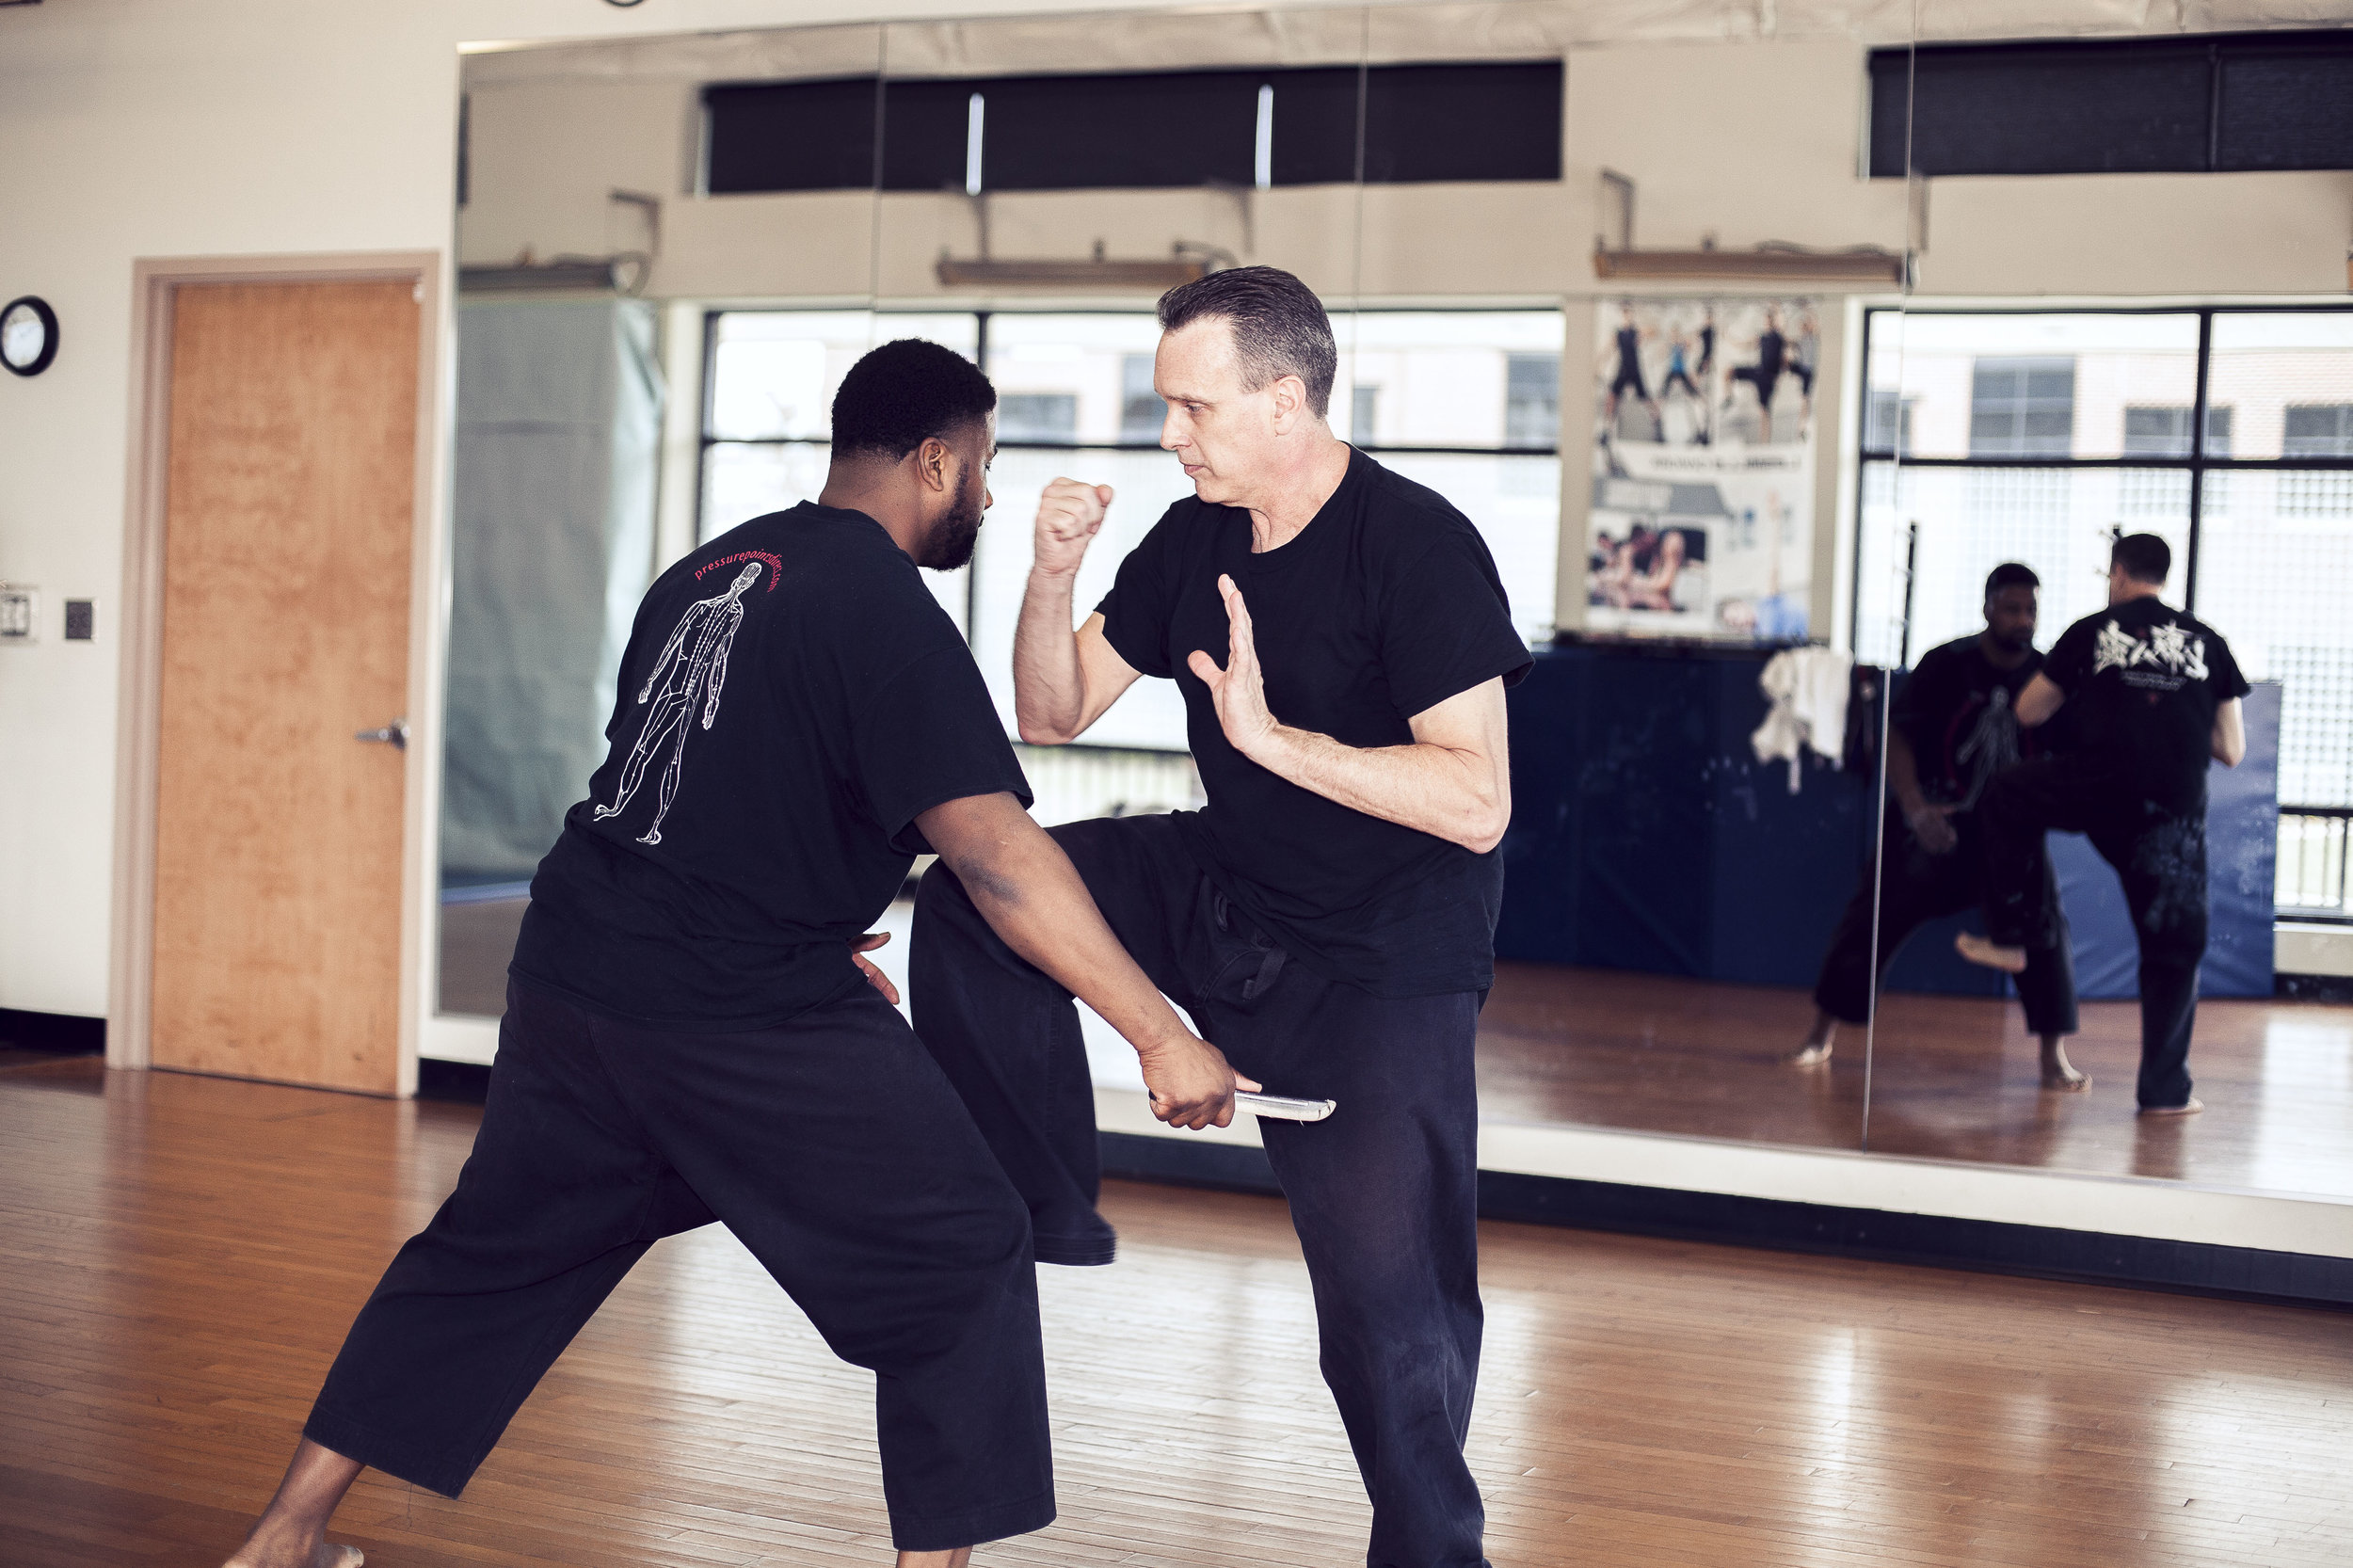 Self Defense Workshops - Our Self Defense Program incorporates simple self defense techniques against a variety of